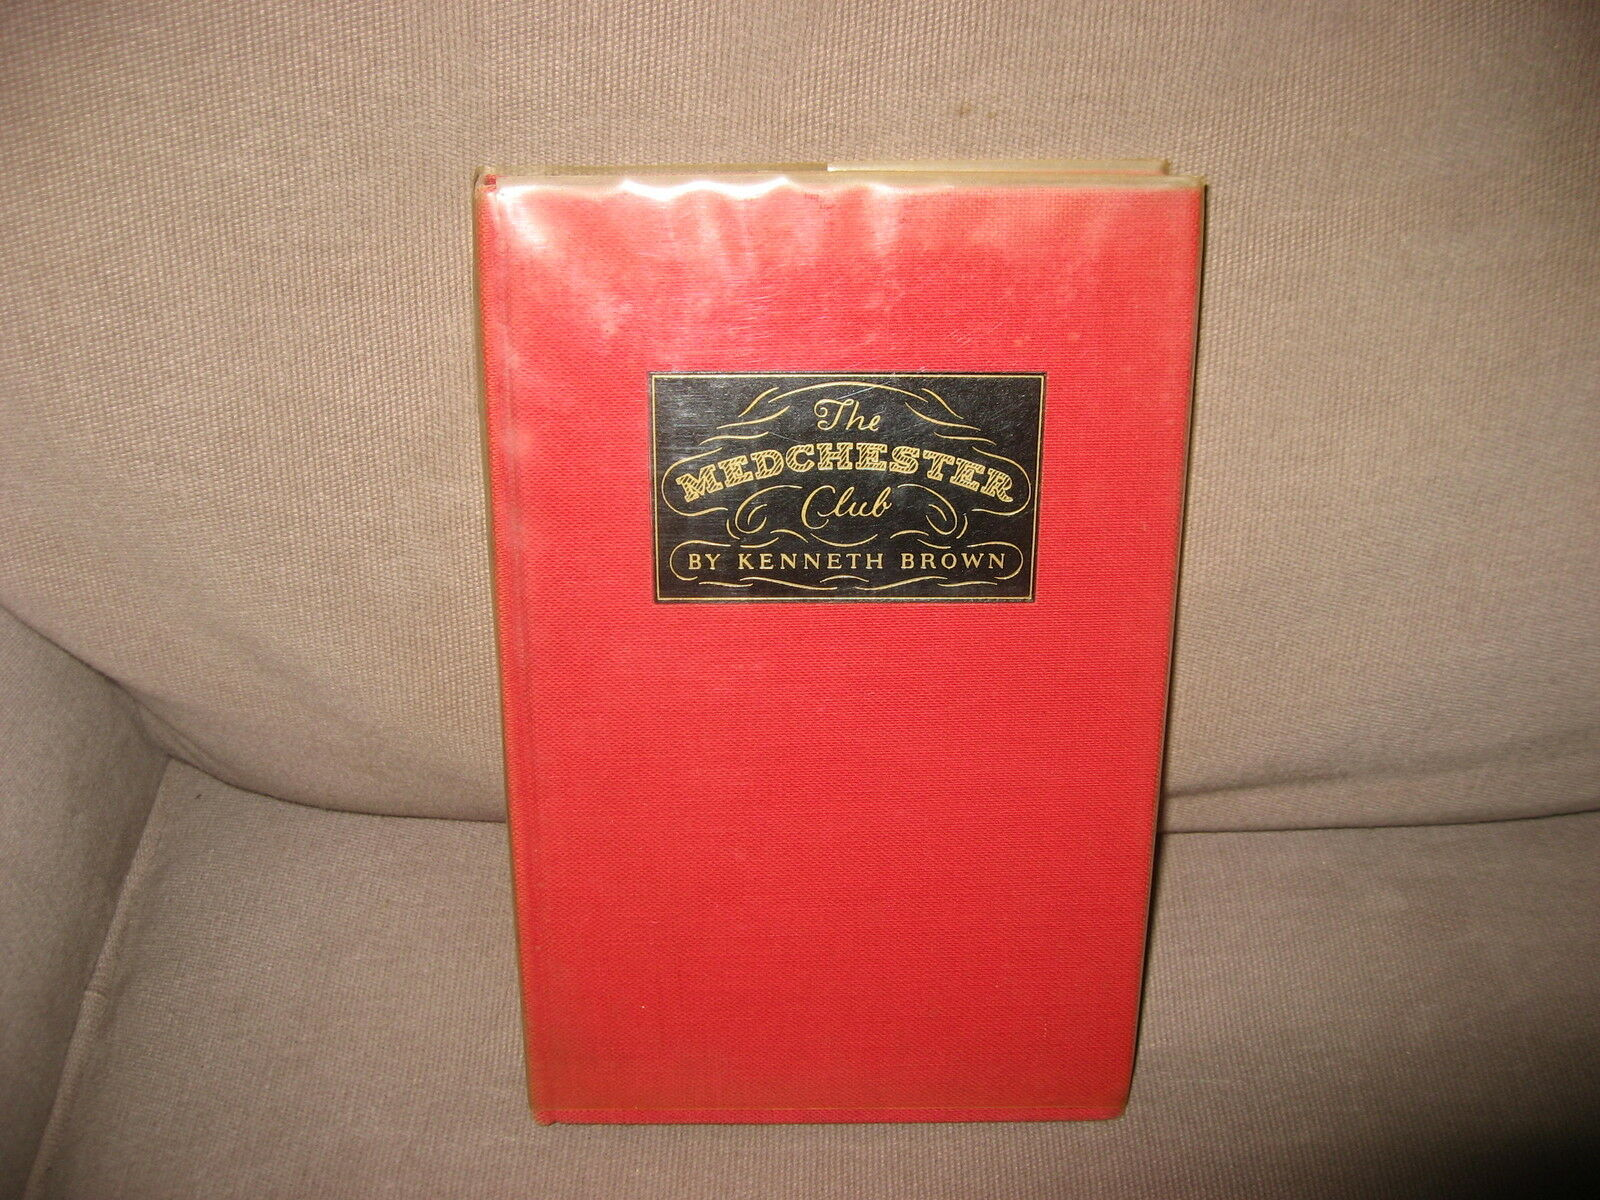 The Medchester Club by Kenneth Brown st Very Good Condition